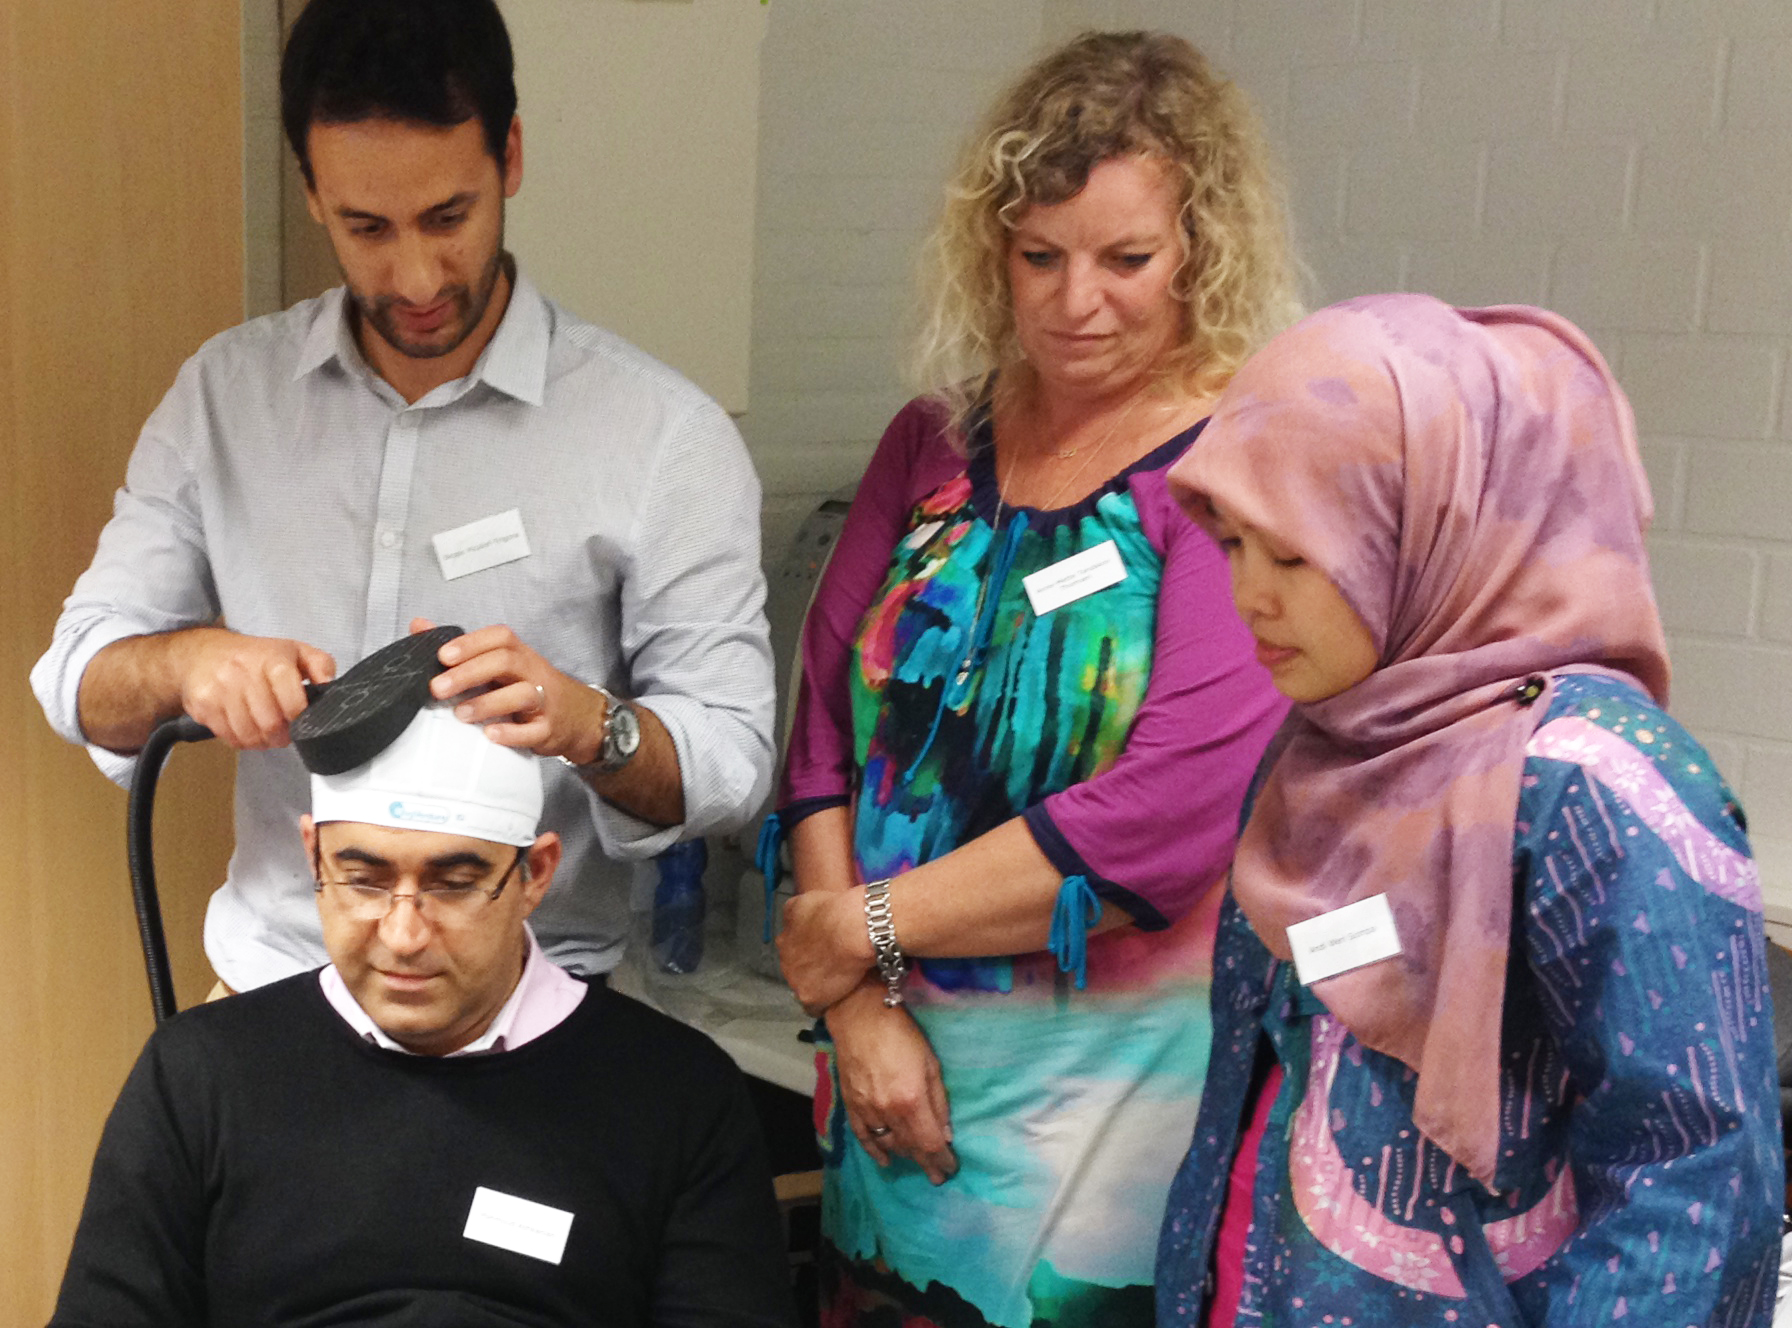 intensive practical hands-on session